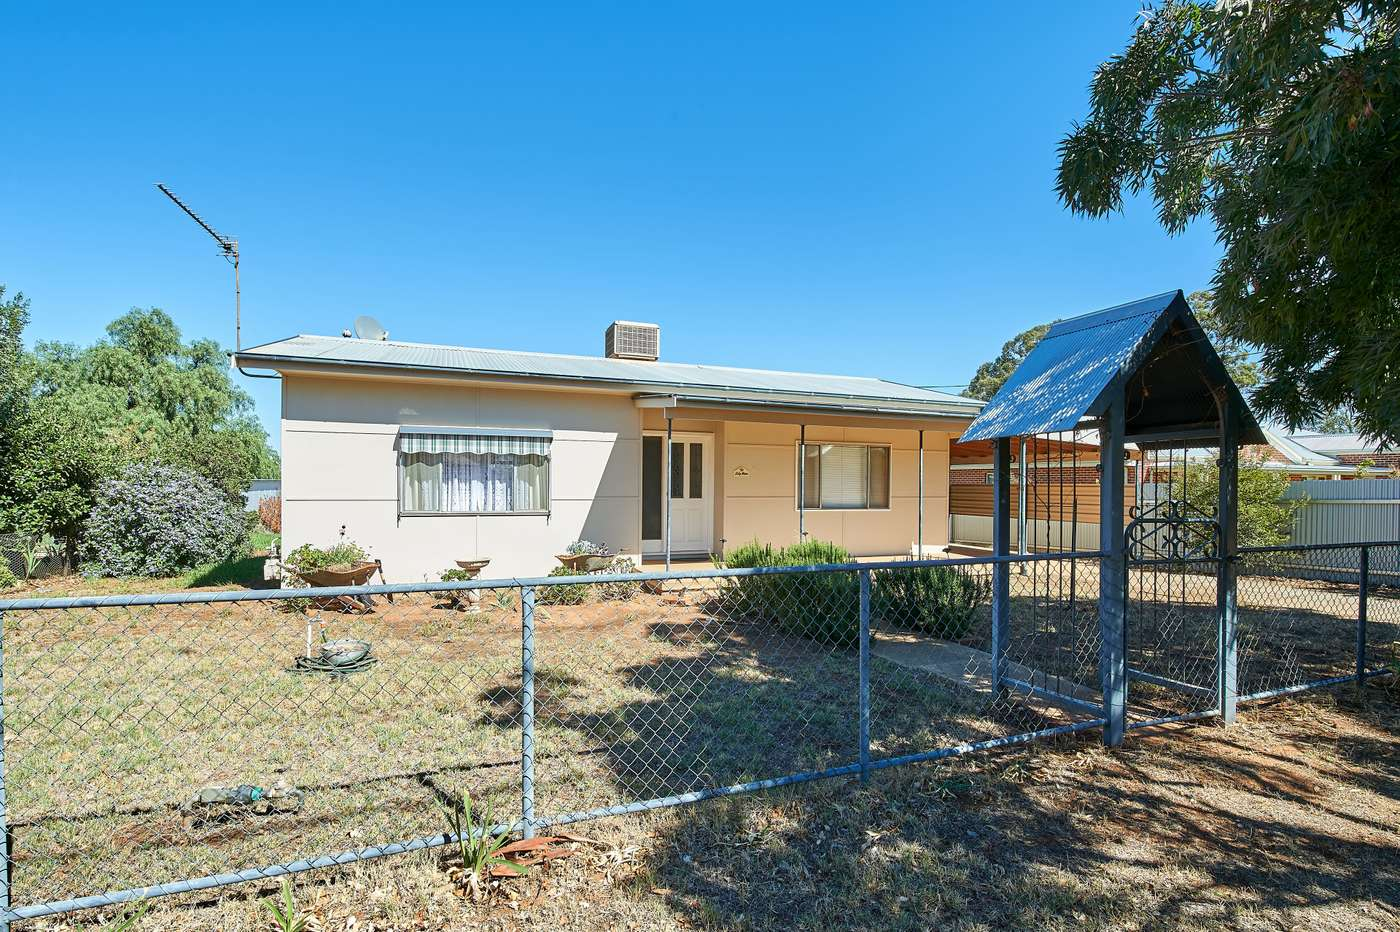 Main view of Homely house listing, 24 Methul Street, Coolamon, NSW 2701